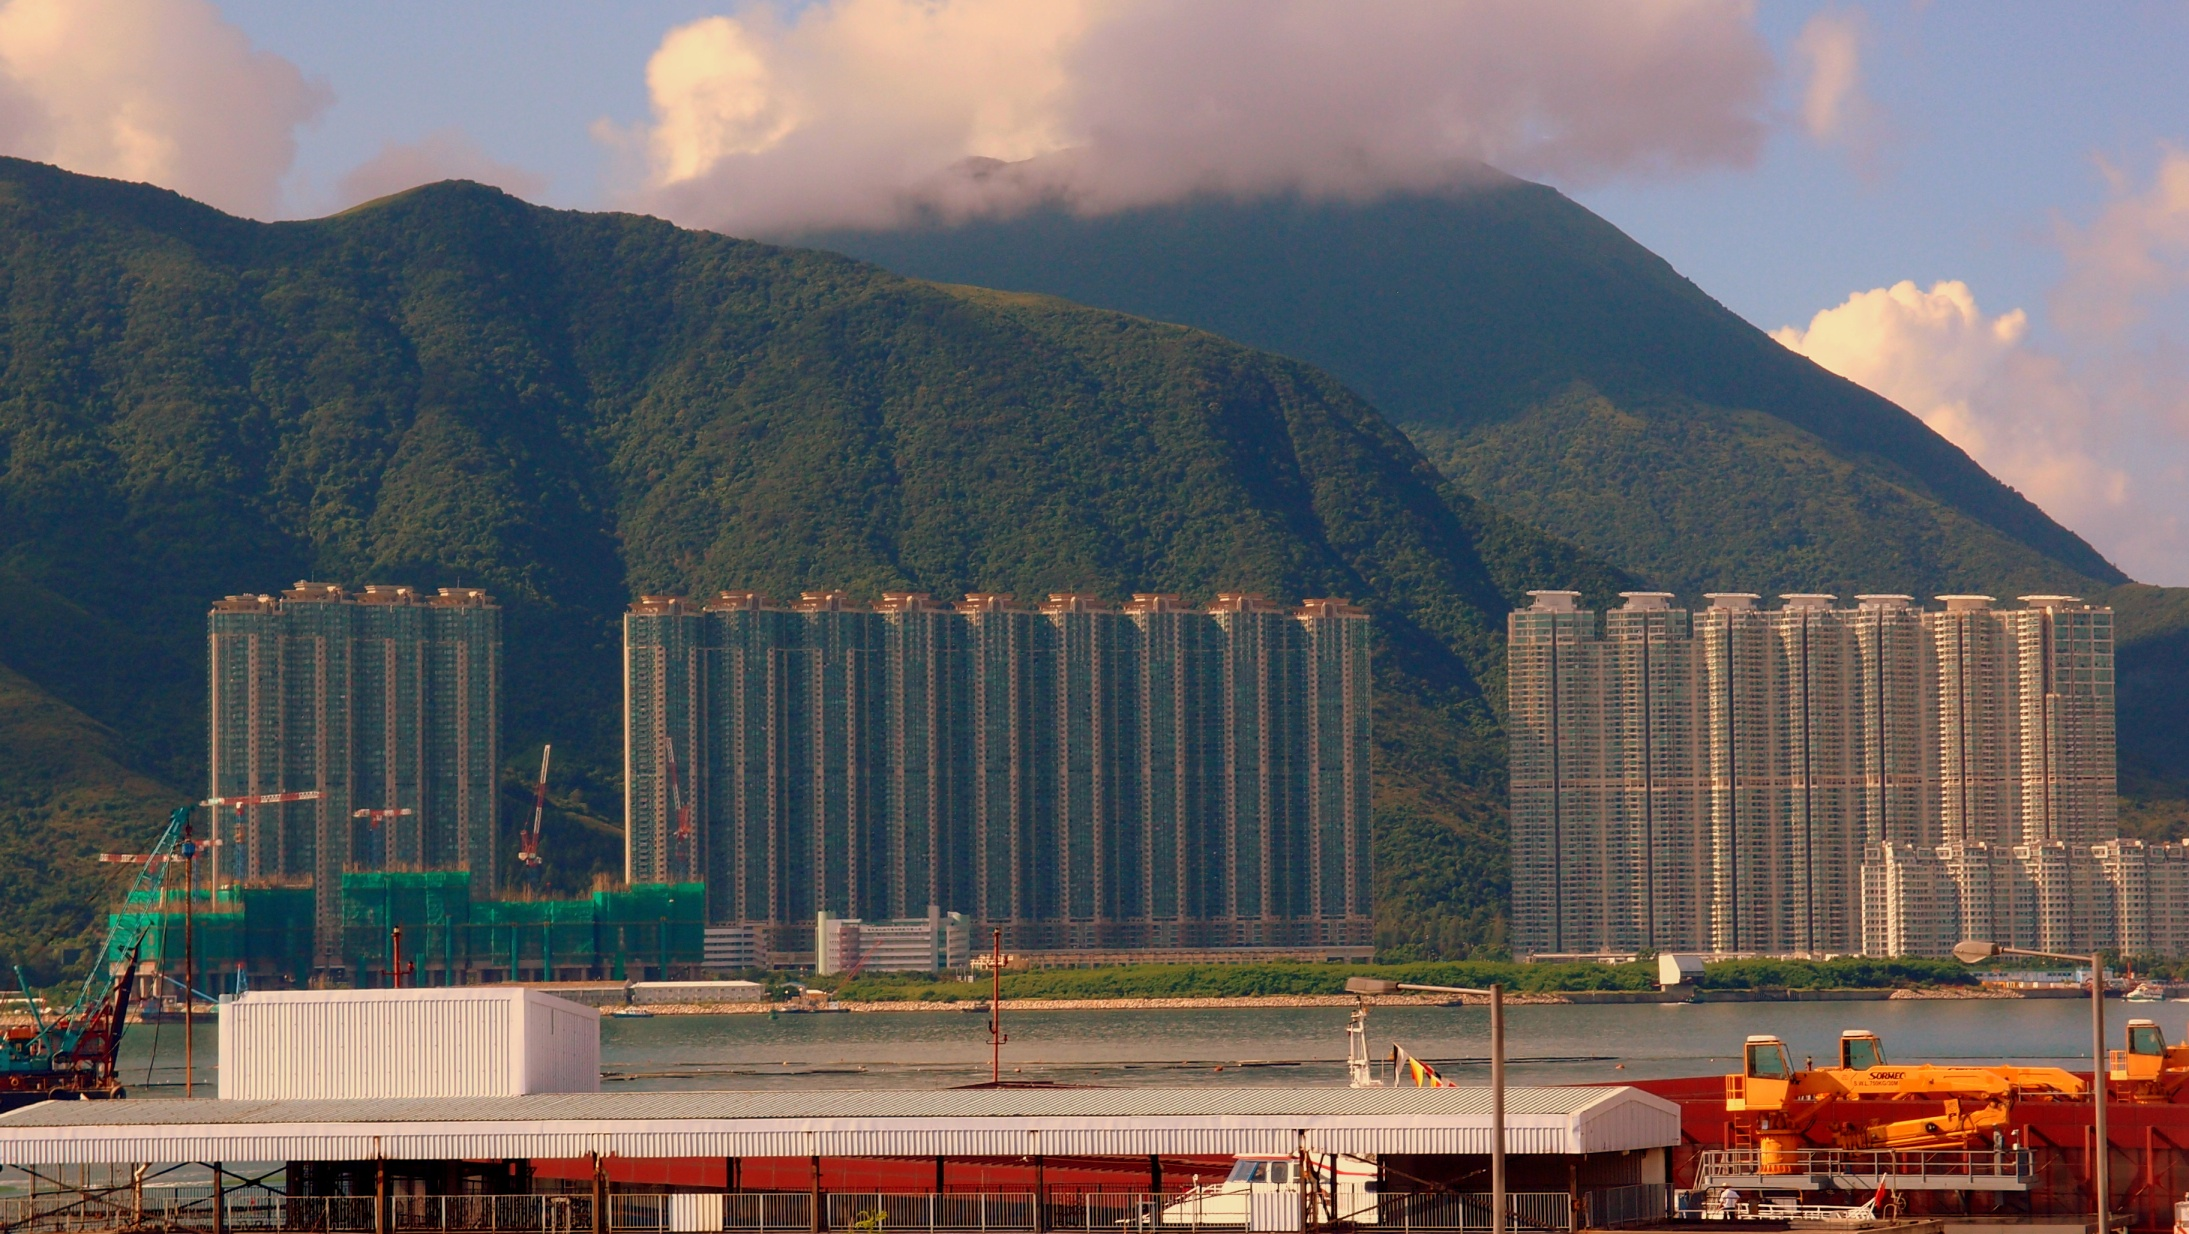 The neatly aligned massive apartment blocks in Tung Chung